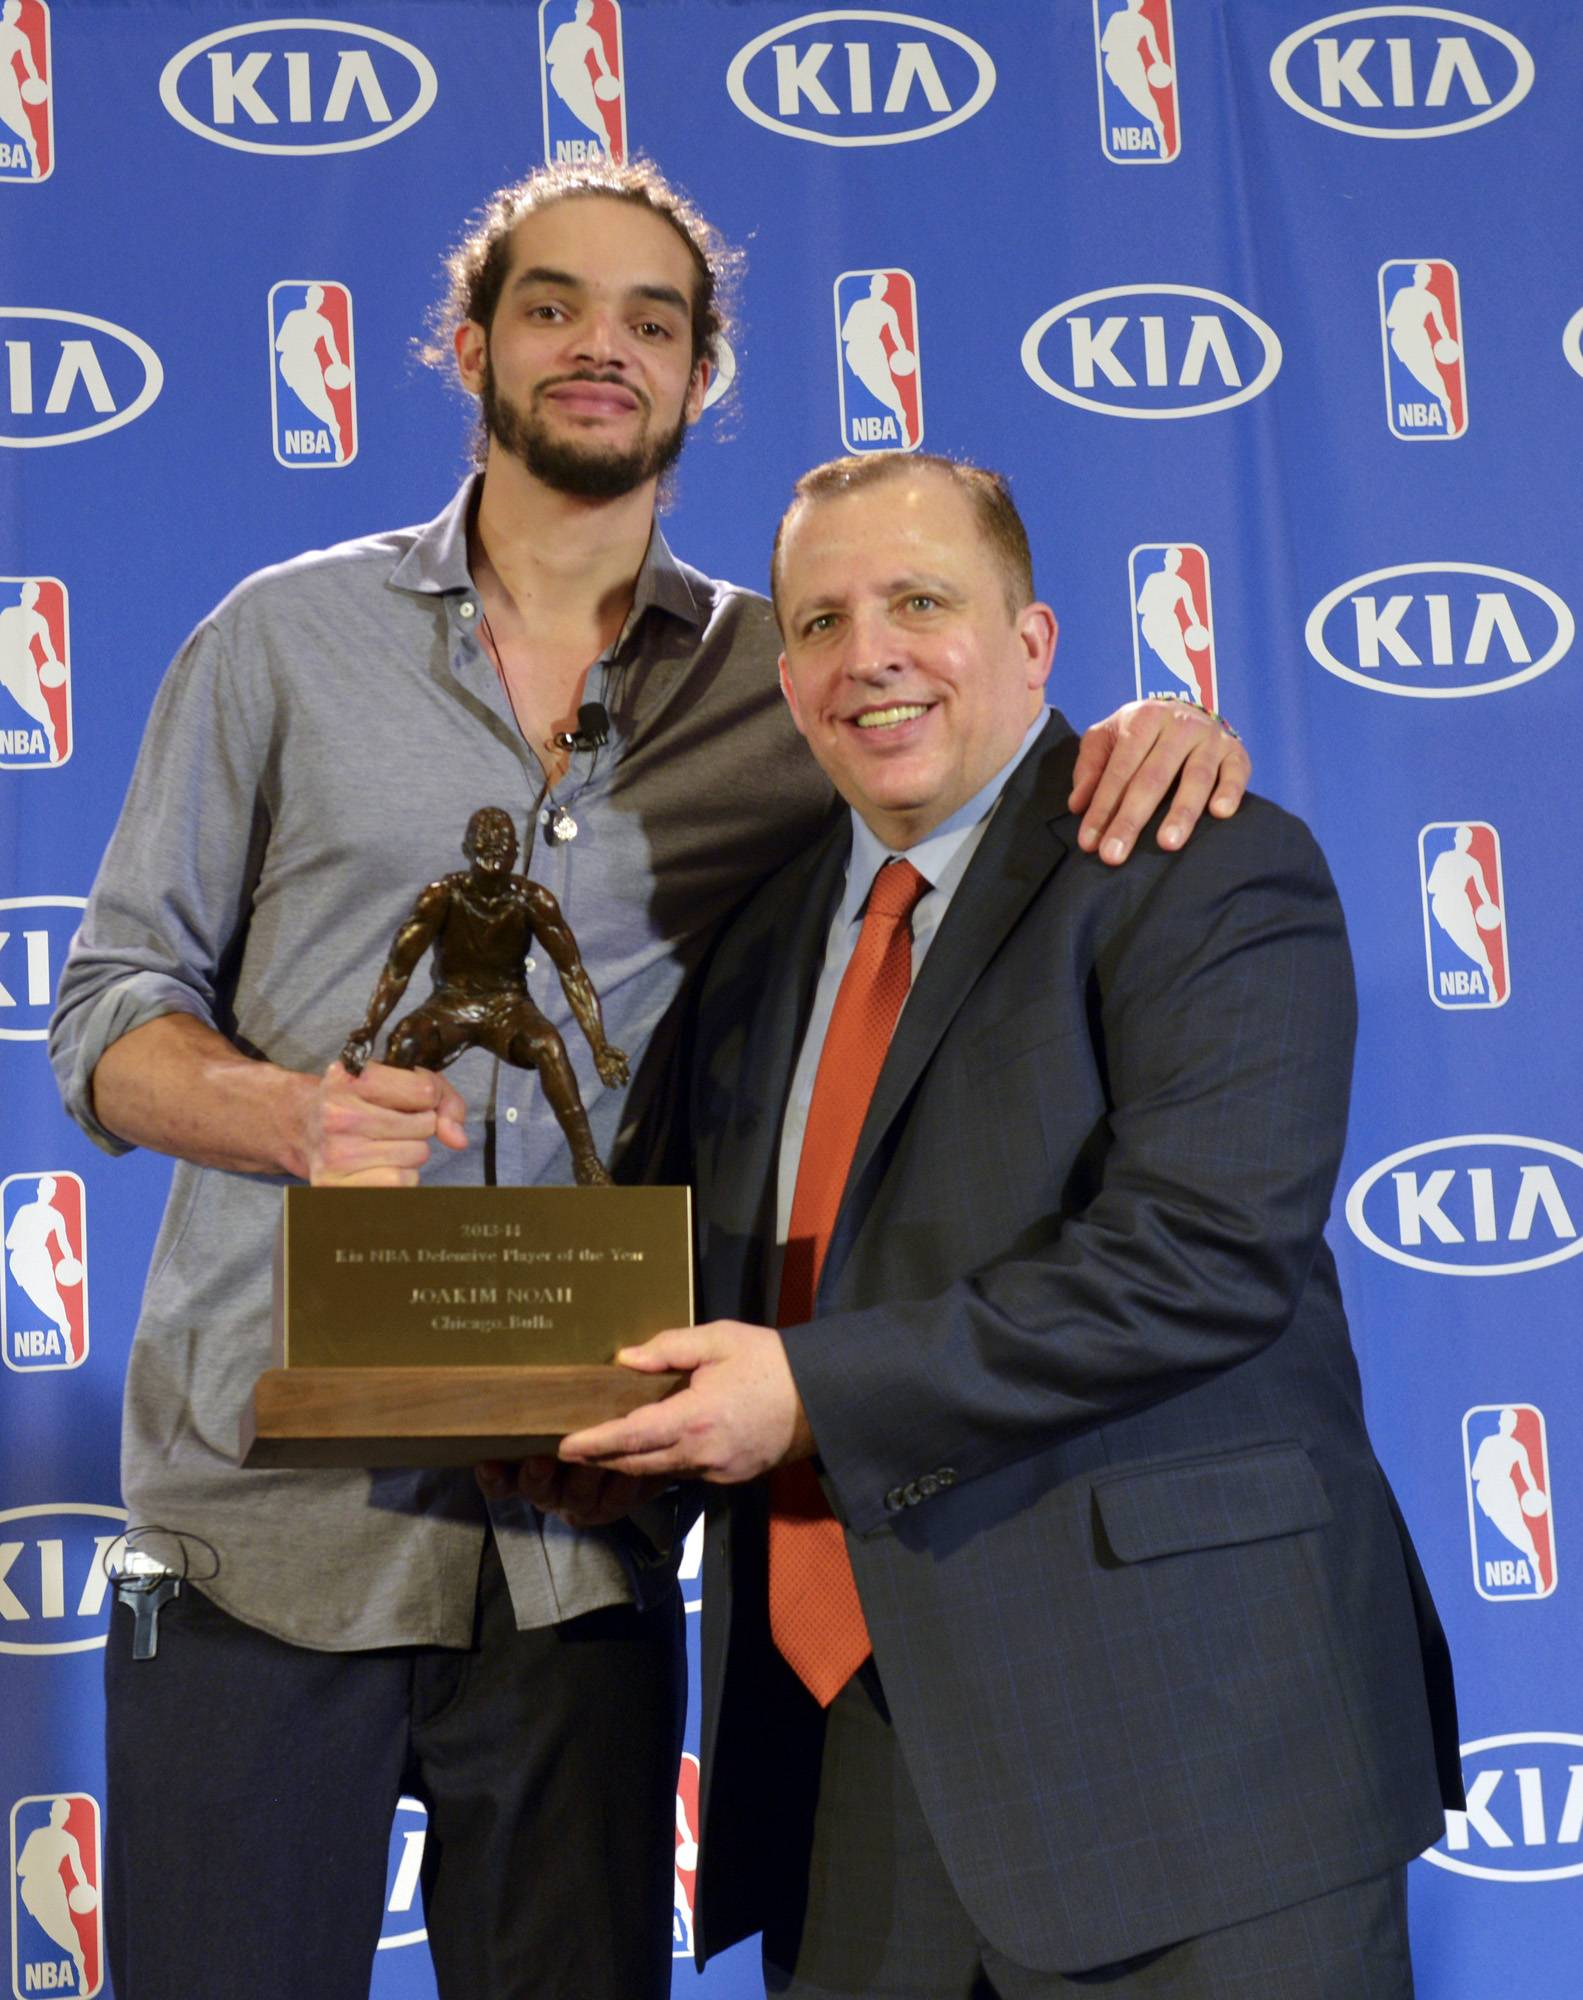 Bulls center Joakim Noah, left, and coach Tom Thibodeau pose for a photo after Noah was awarded the NBA's Defensive Player of the Year, Monday, April 21, 2014.